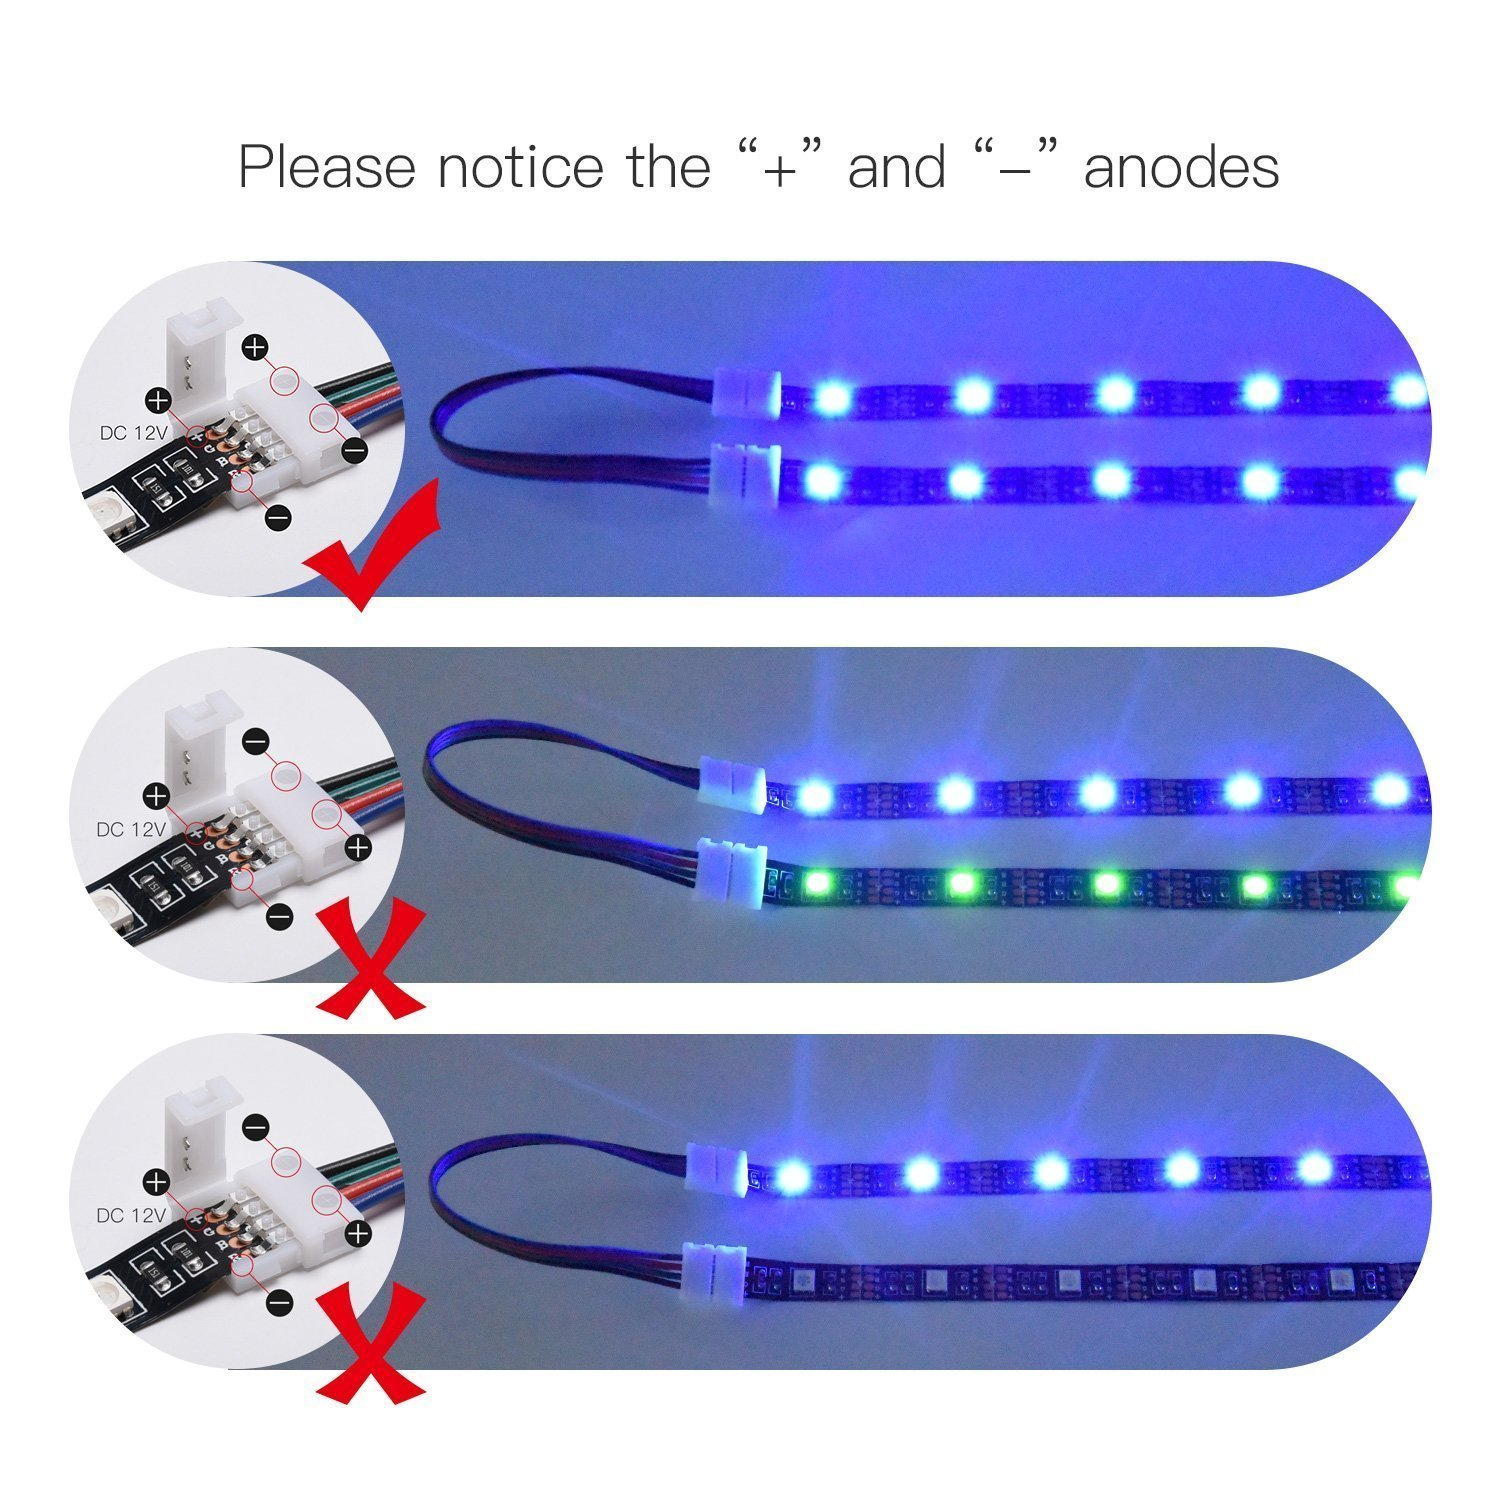 RGB Extension Wire Cable 4 Pin JACKYLED/10m//32.8ft Ribbon Cord LED Strip Light RGB Connector for 5050 LED Light Strip LED Splitter Connectors Kit